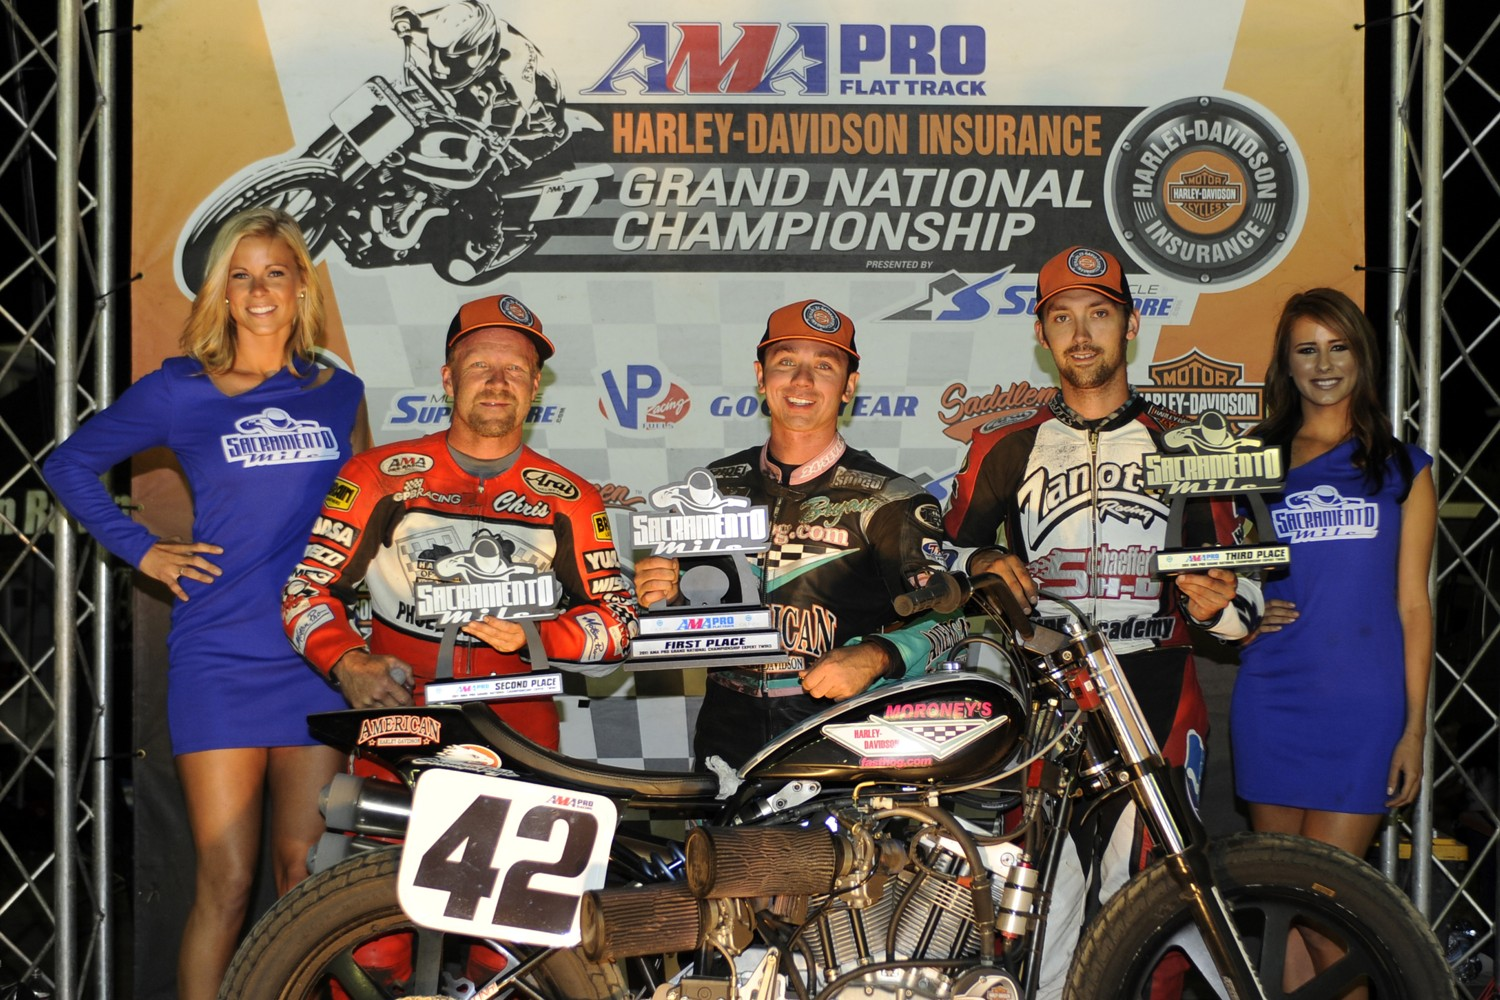 AMA Pro Racing Grand National Mile